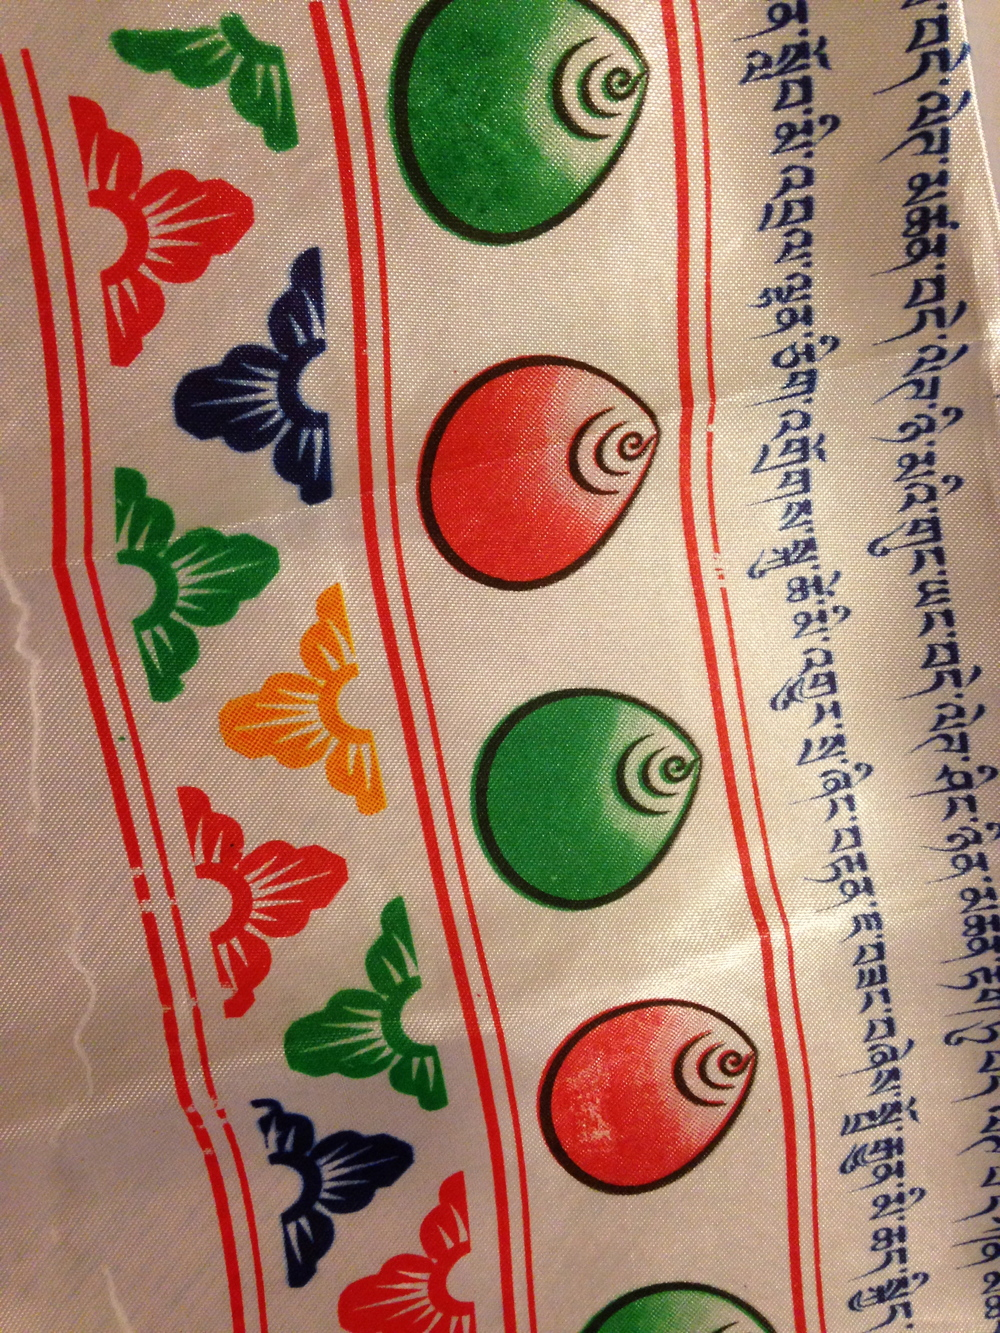 A silk khata scarf with Tibetan mantras.